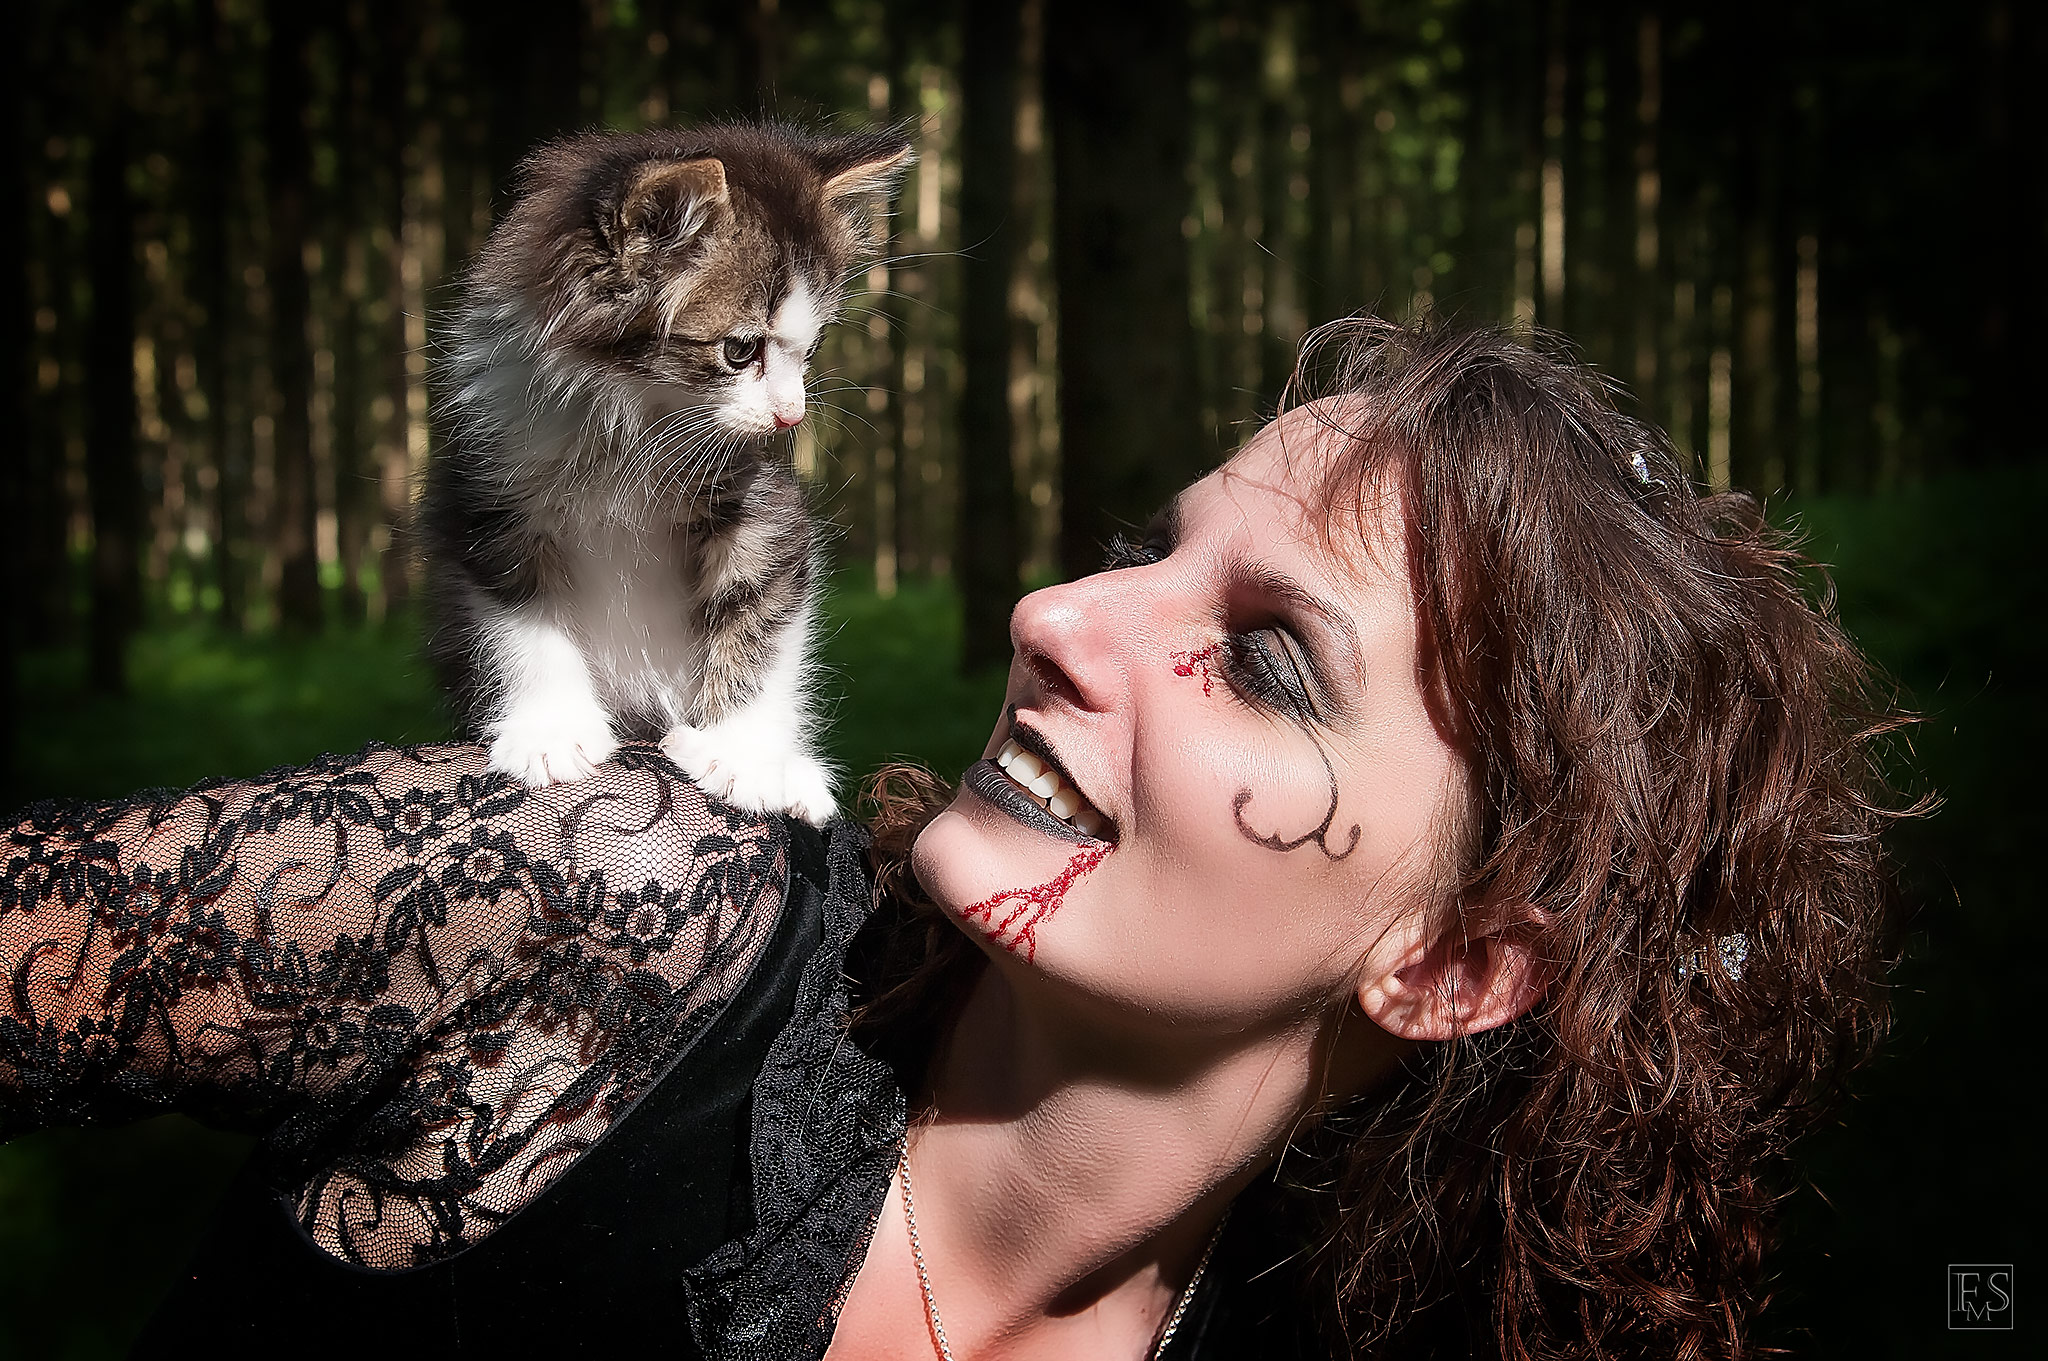 The Cat and the Witch